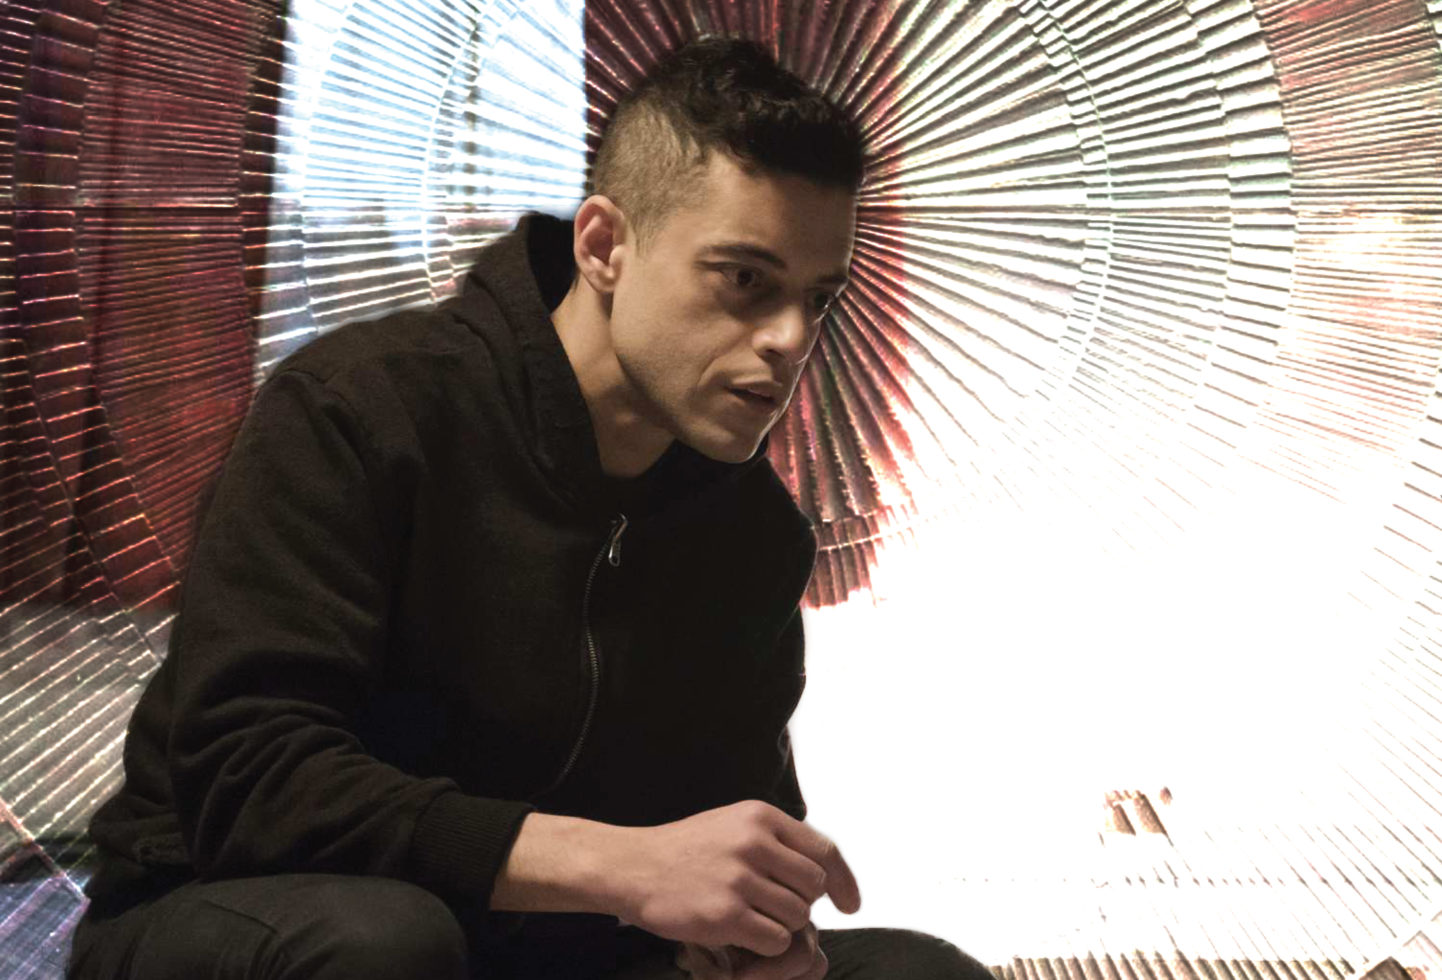 mr robot 205 bomb logic with androids 2016 images